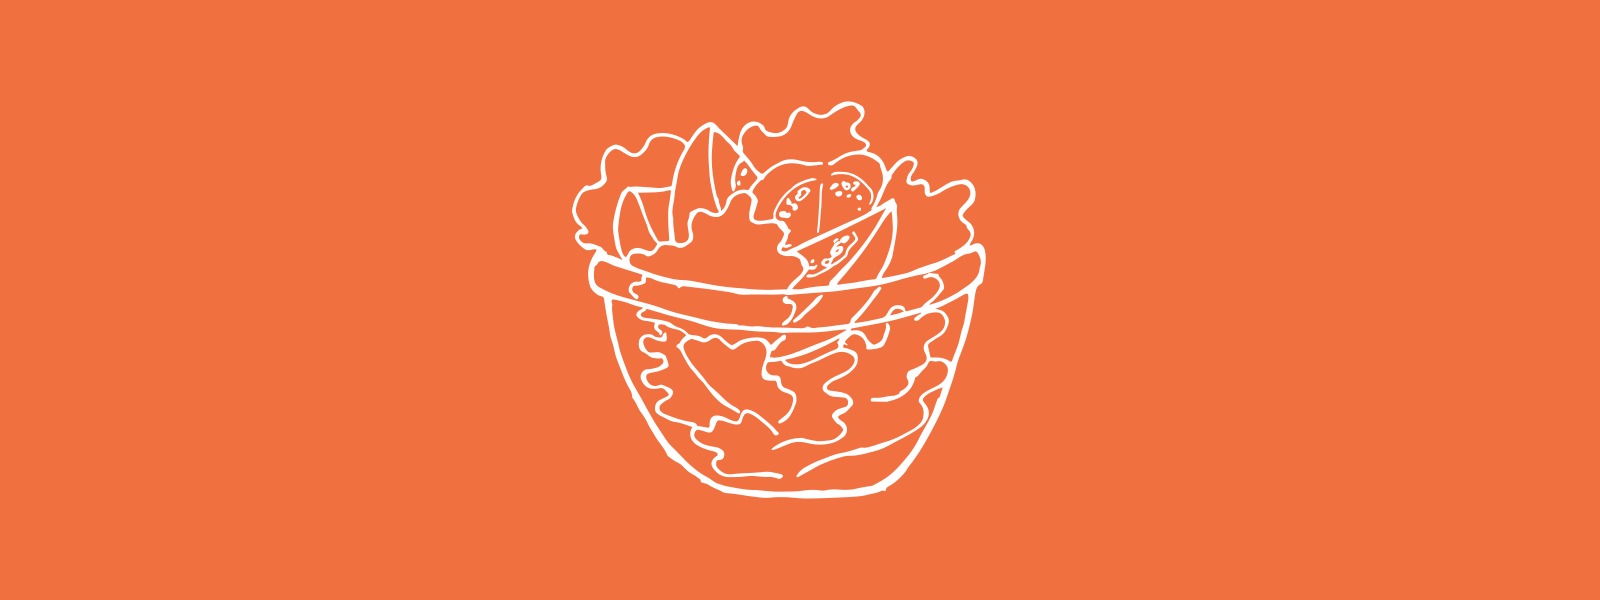 Icon background of a fresh salad bowl